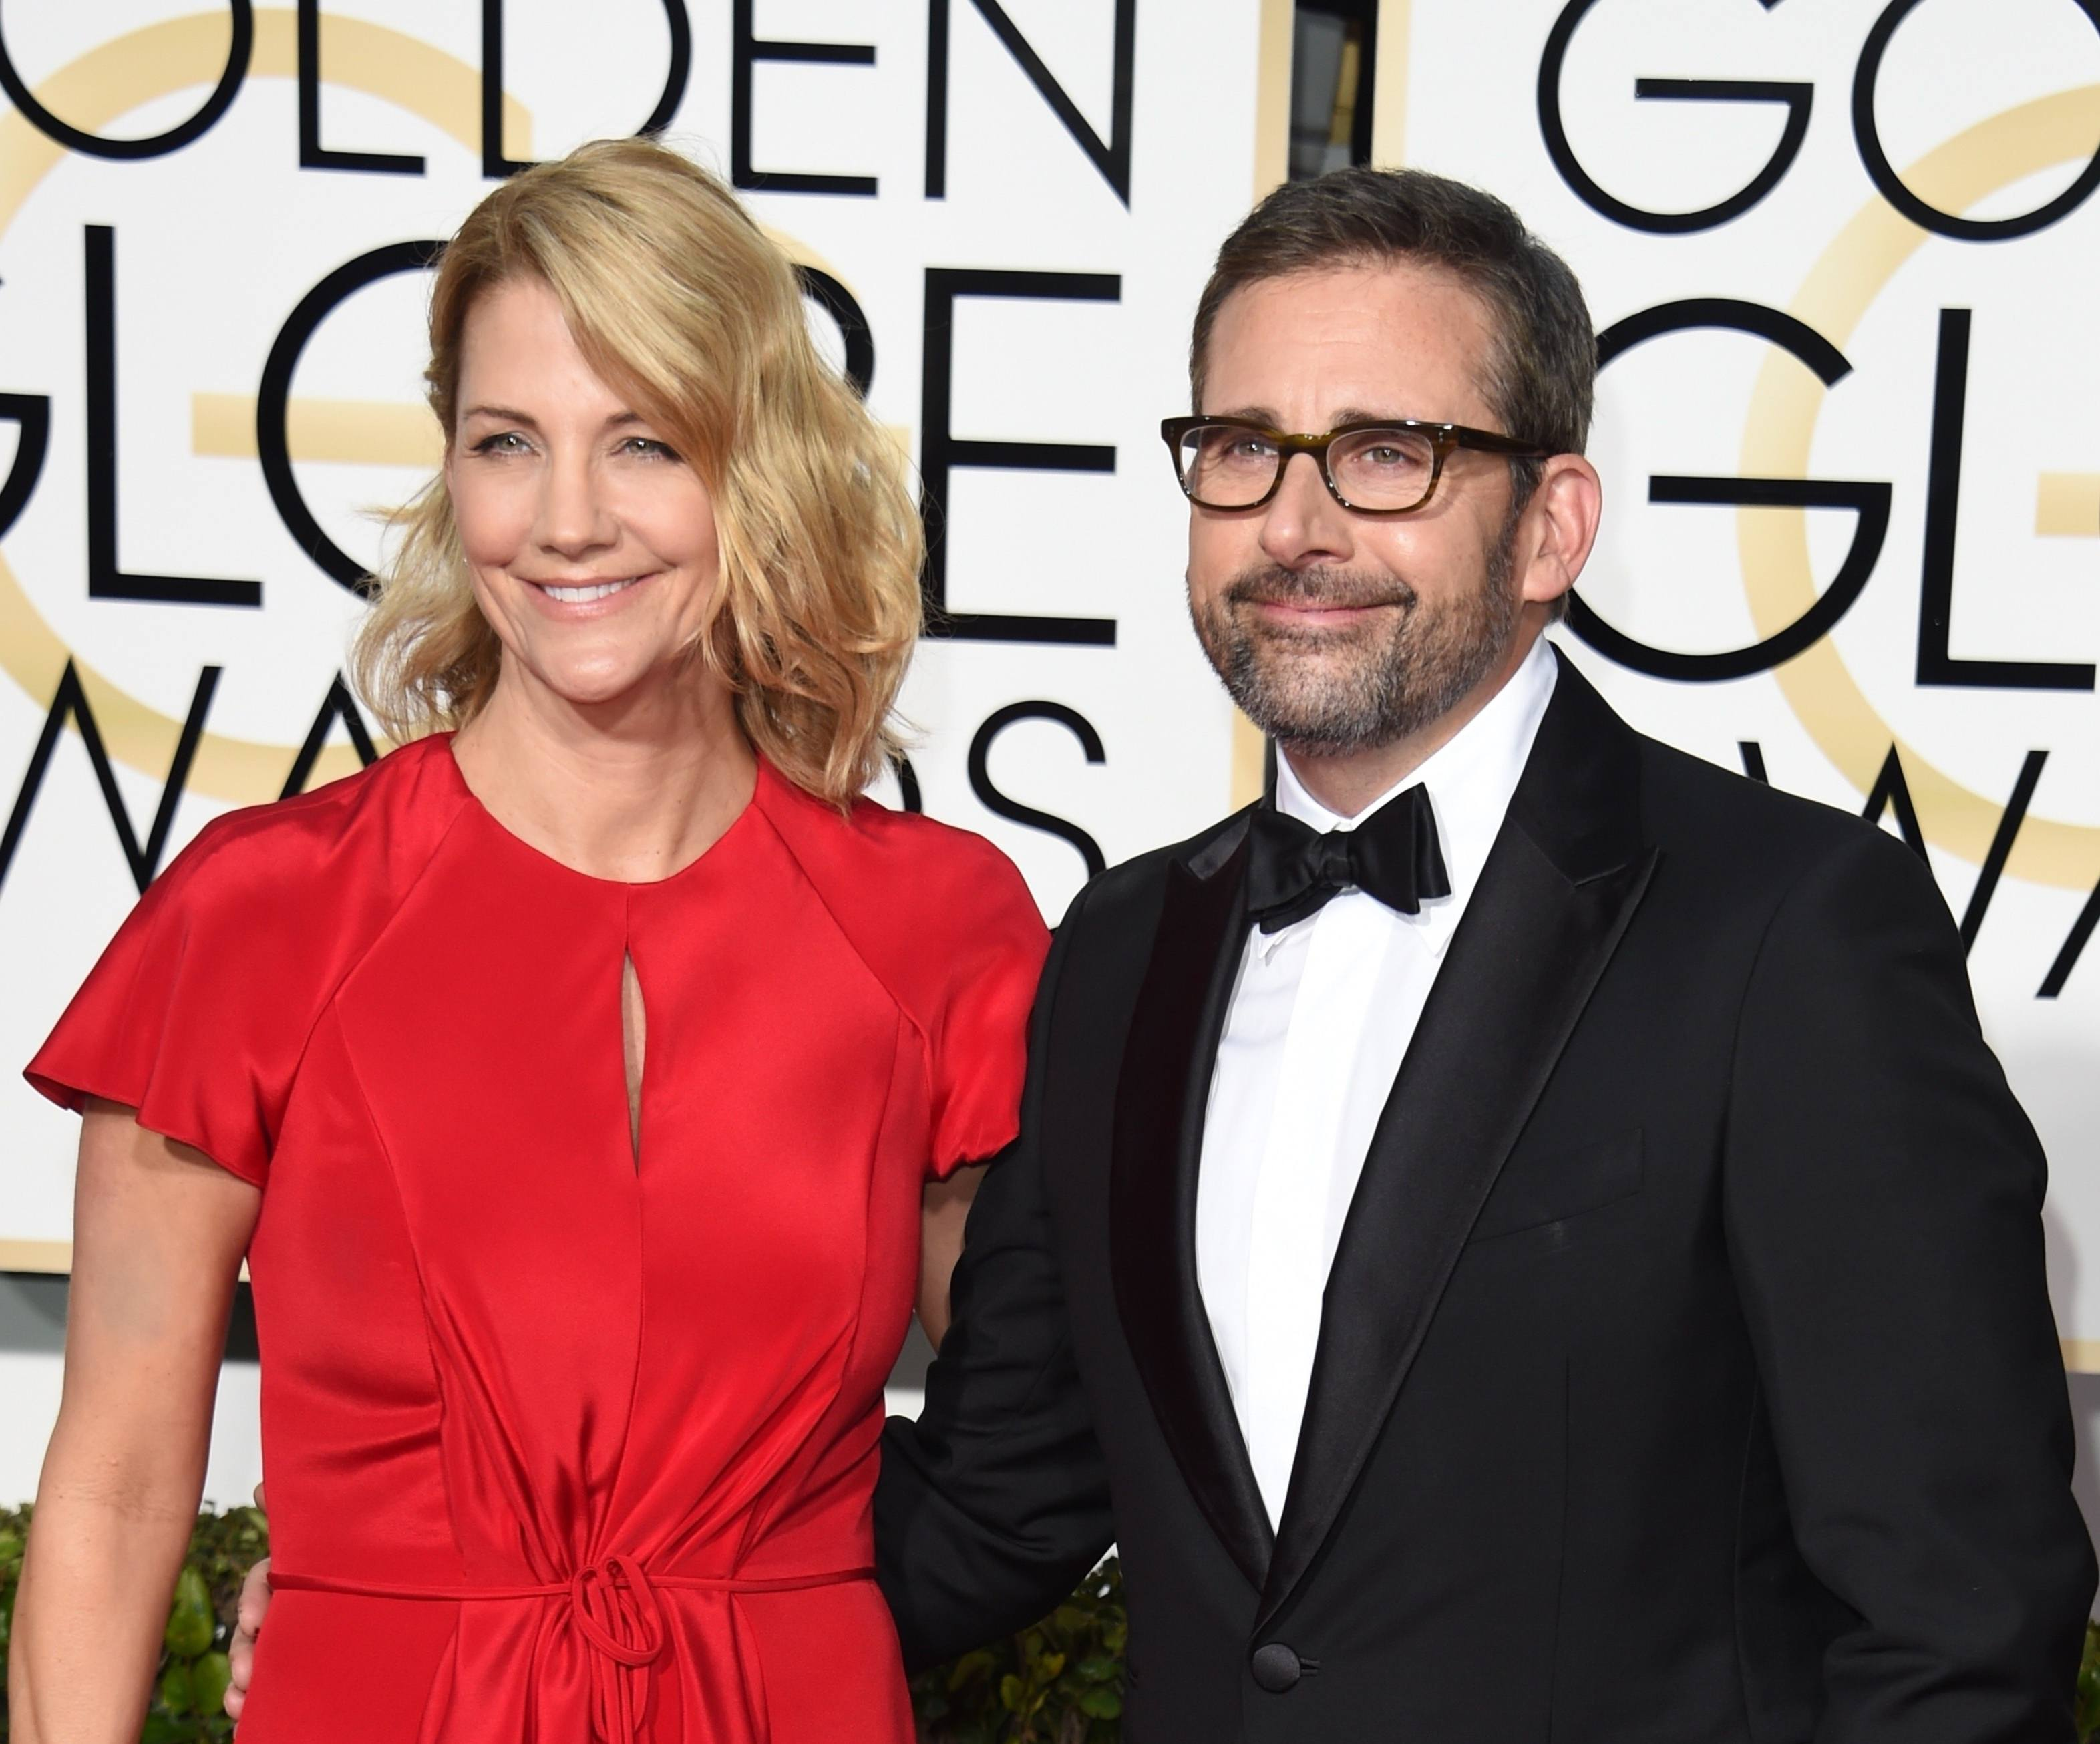 Steve Carell with wife Nancy Carell on the red carpet for the 72nd Golden Globes, 2015